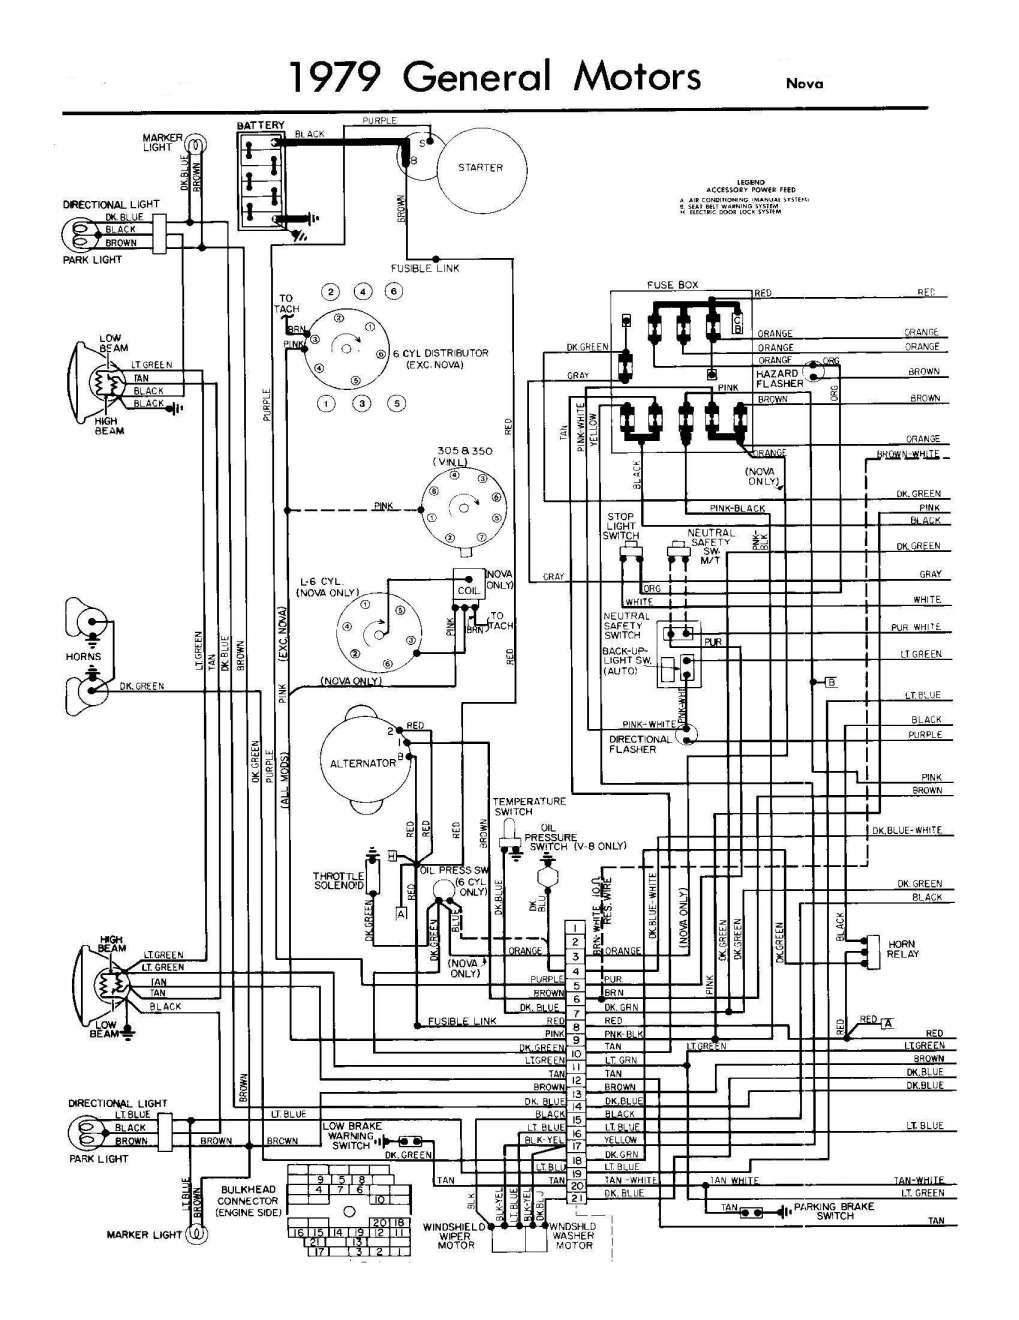 10 1979 Chevy Truck Engine Distributor Diagram Chevy Trucks 1979 Chevy Truck 79 Chevy Truck